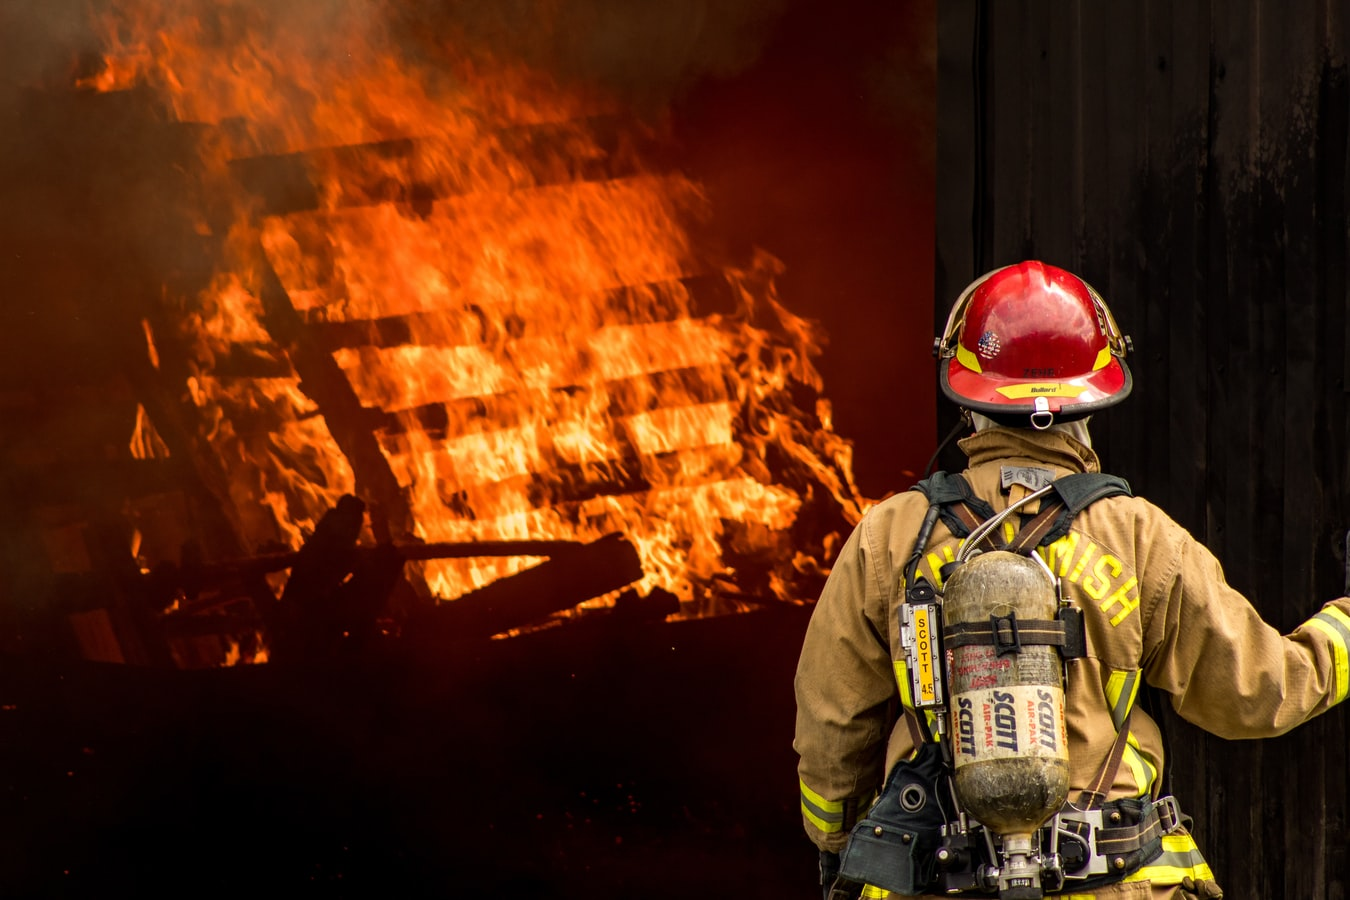 Thank you to the Fire Fighters & EMT's Battling Wildfires